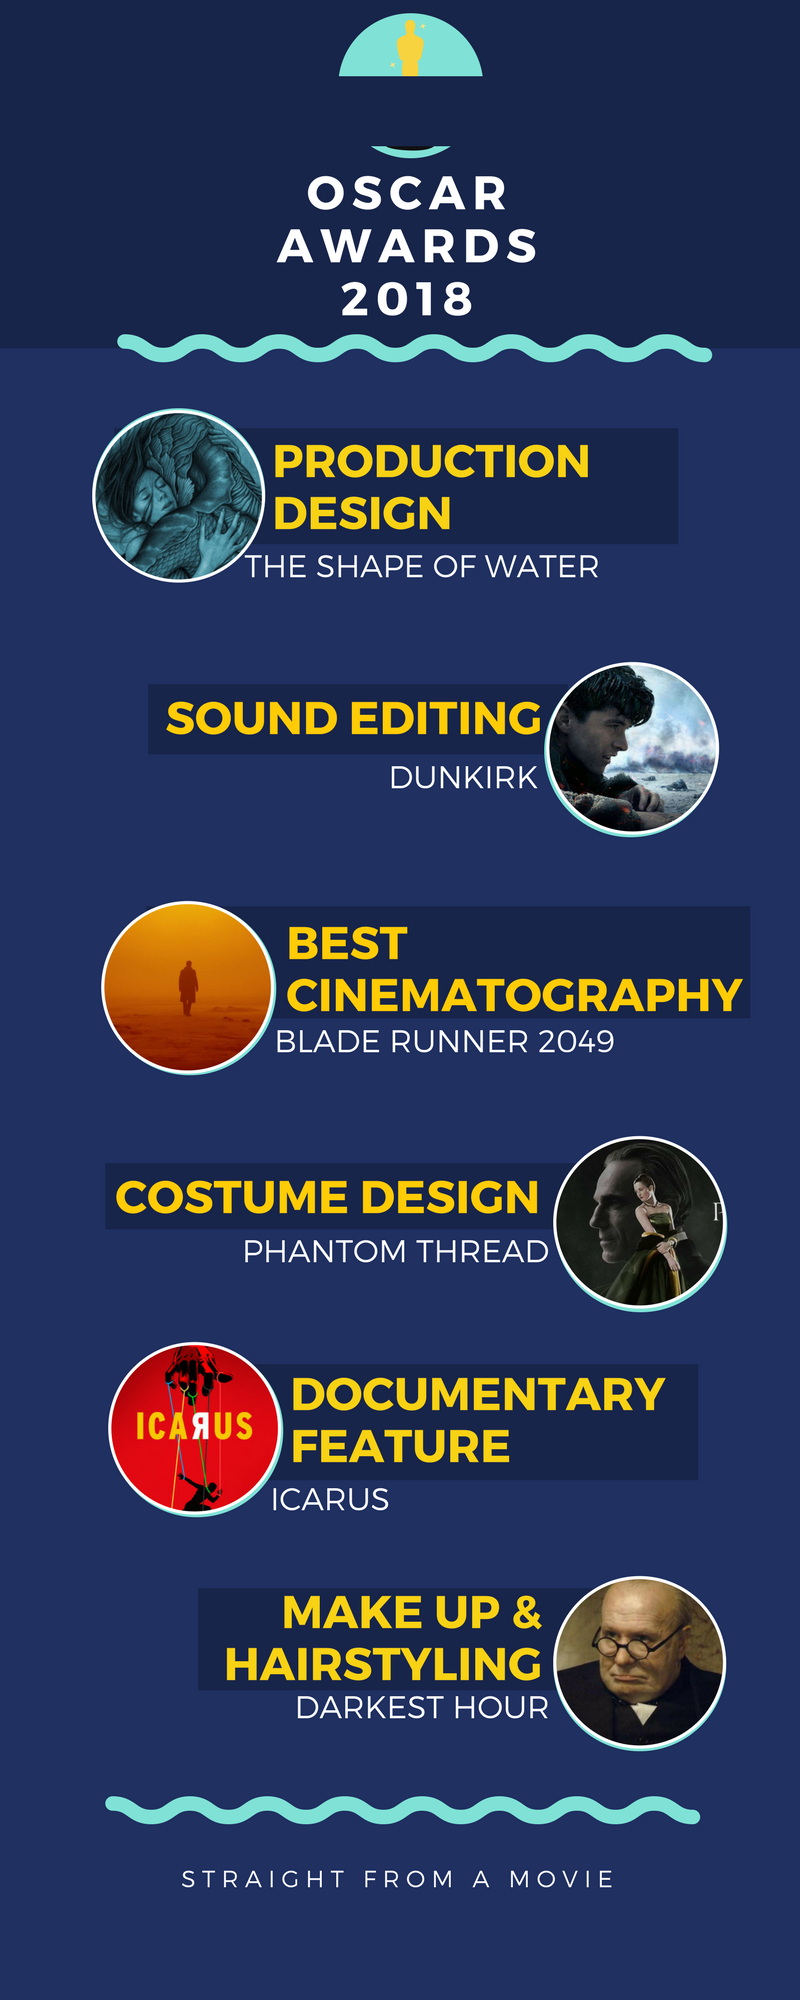 oscars 2018 infographic page 4